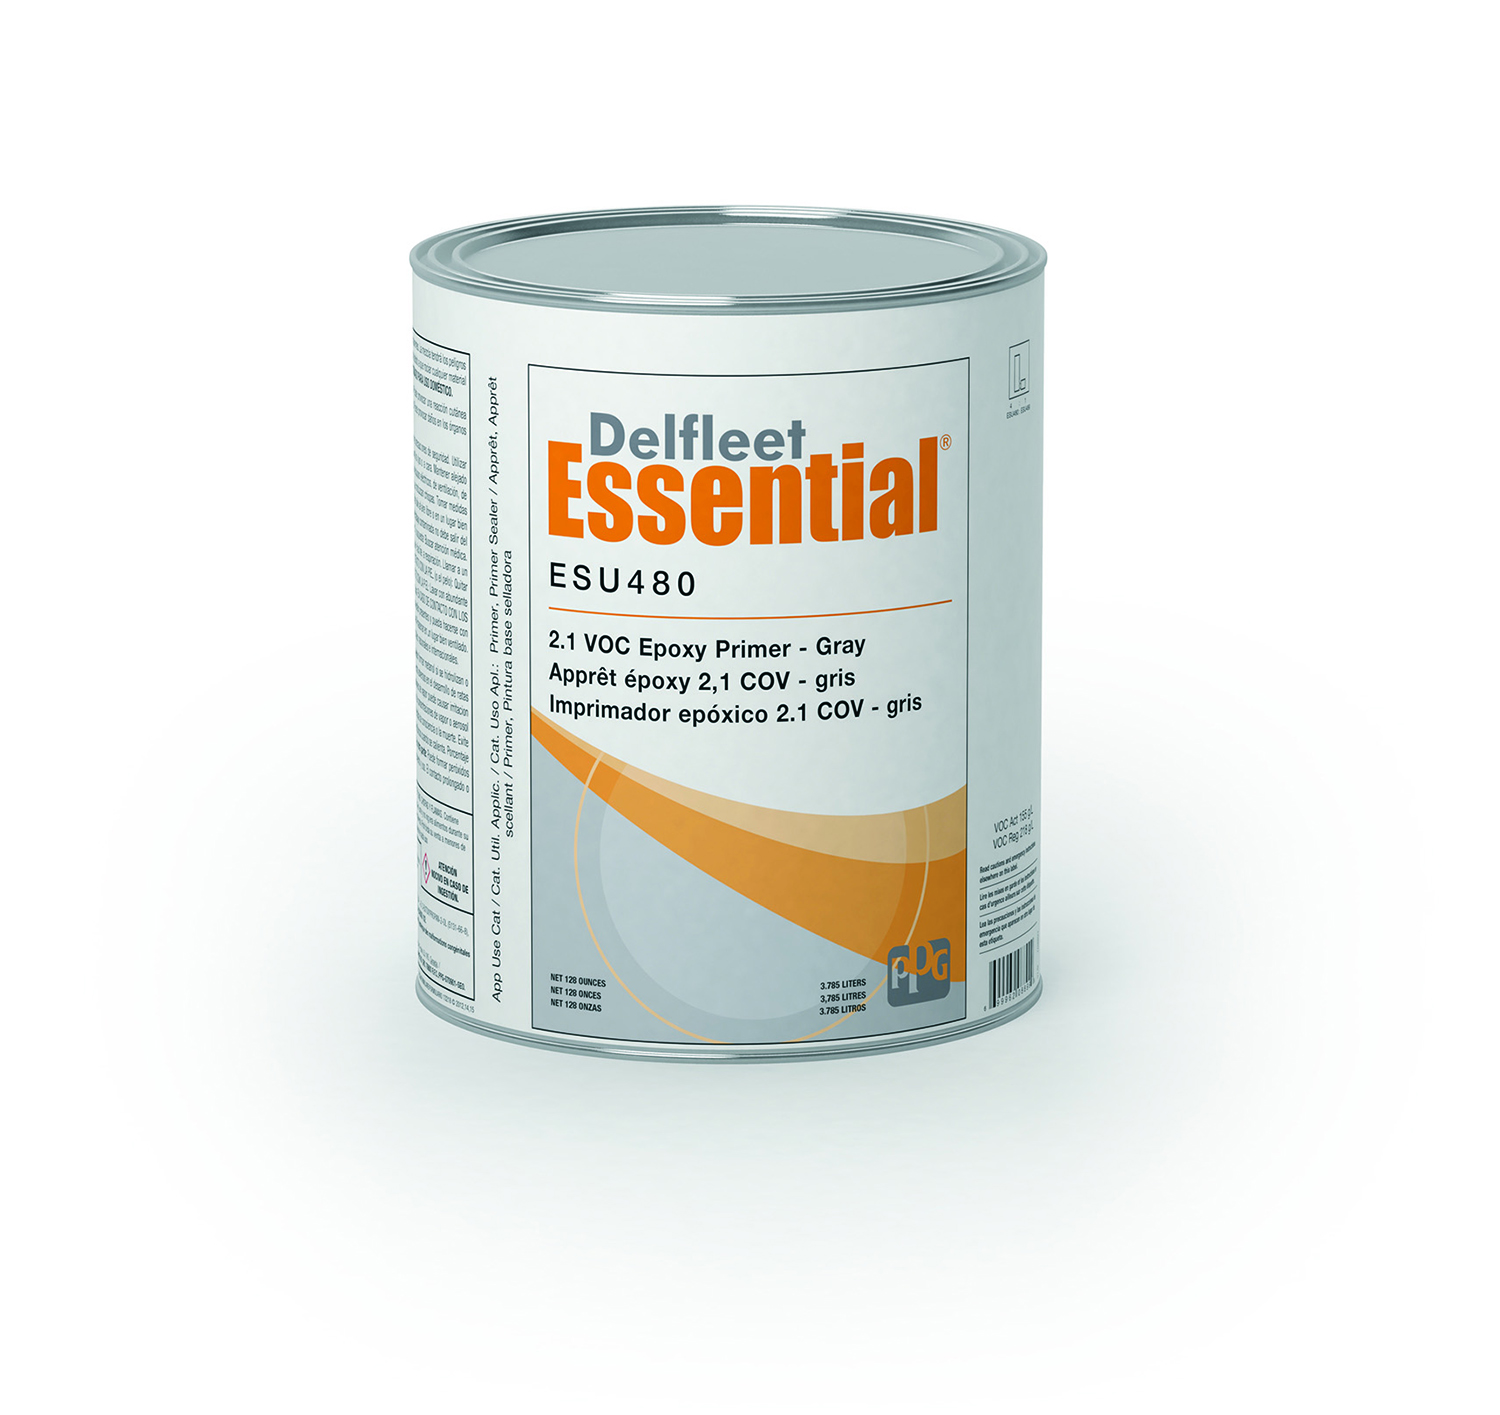 PPG adds new primer to DELFLEET ESSENTIAL paint sy - PPG - Paints